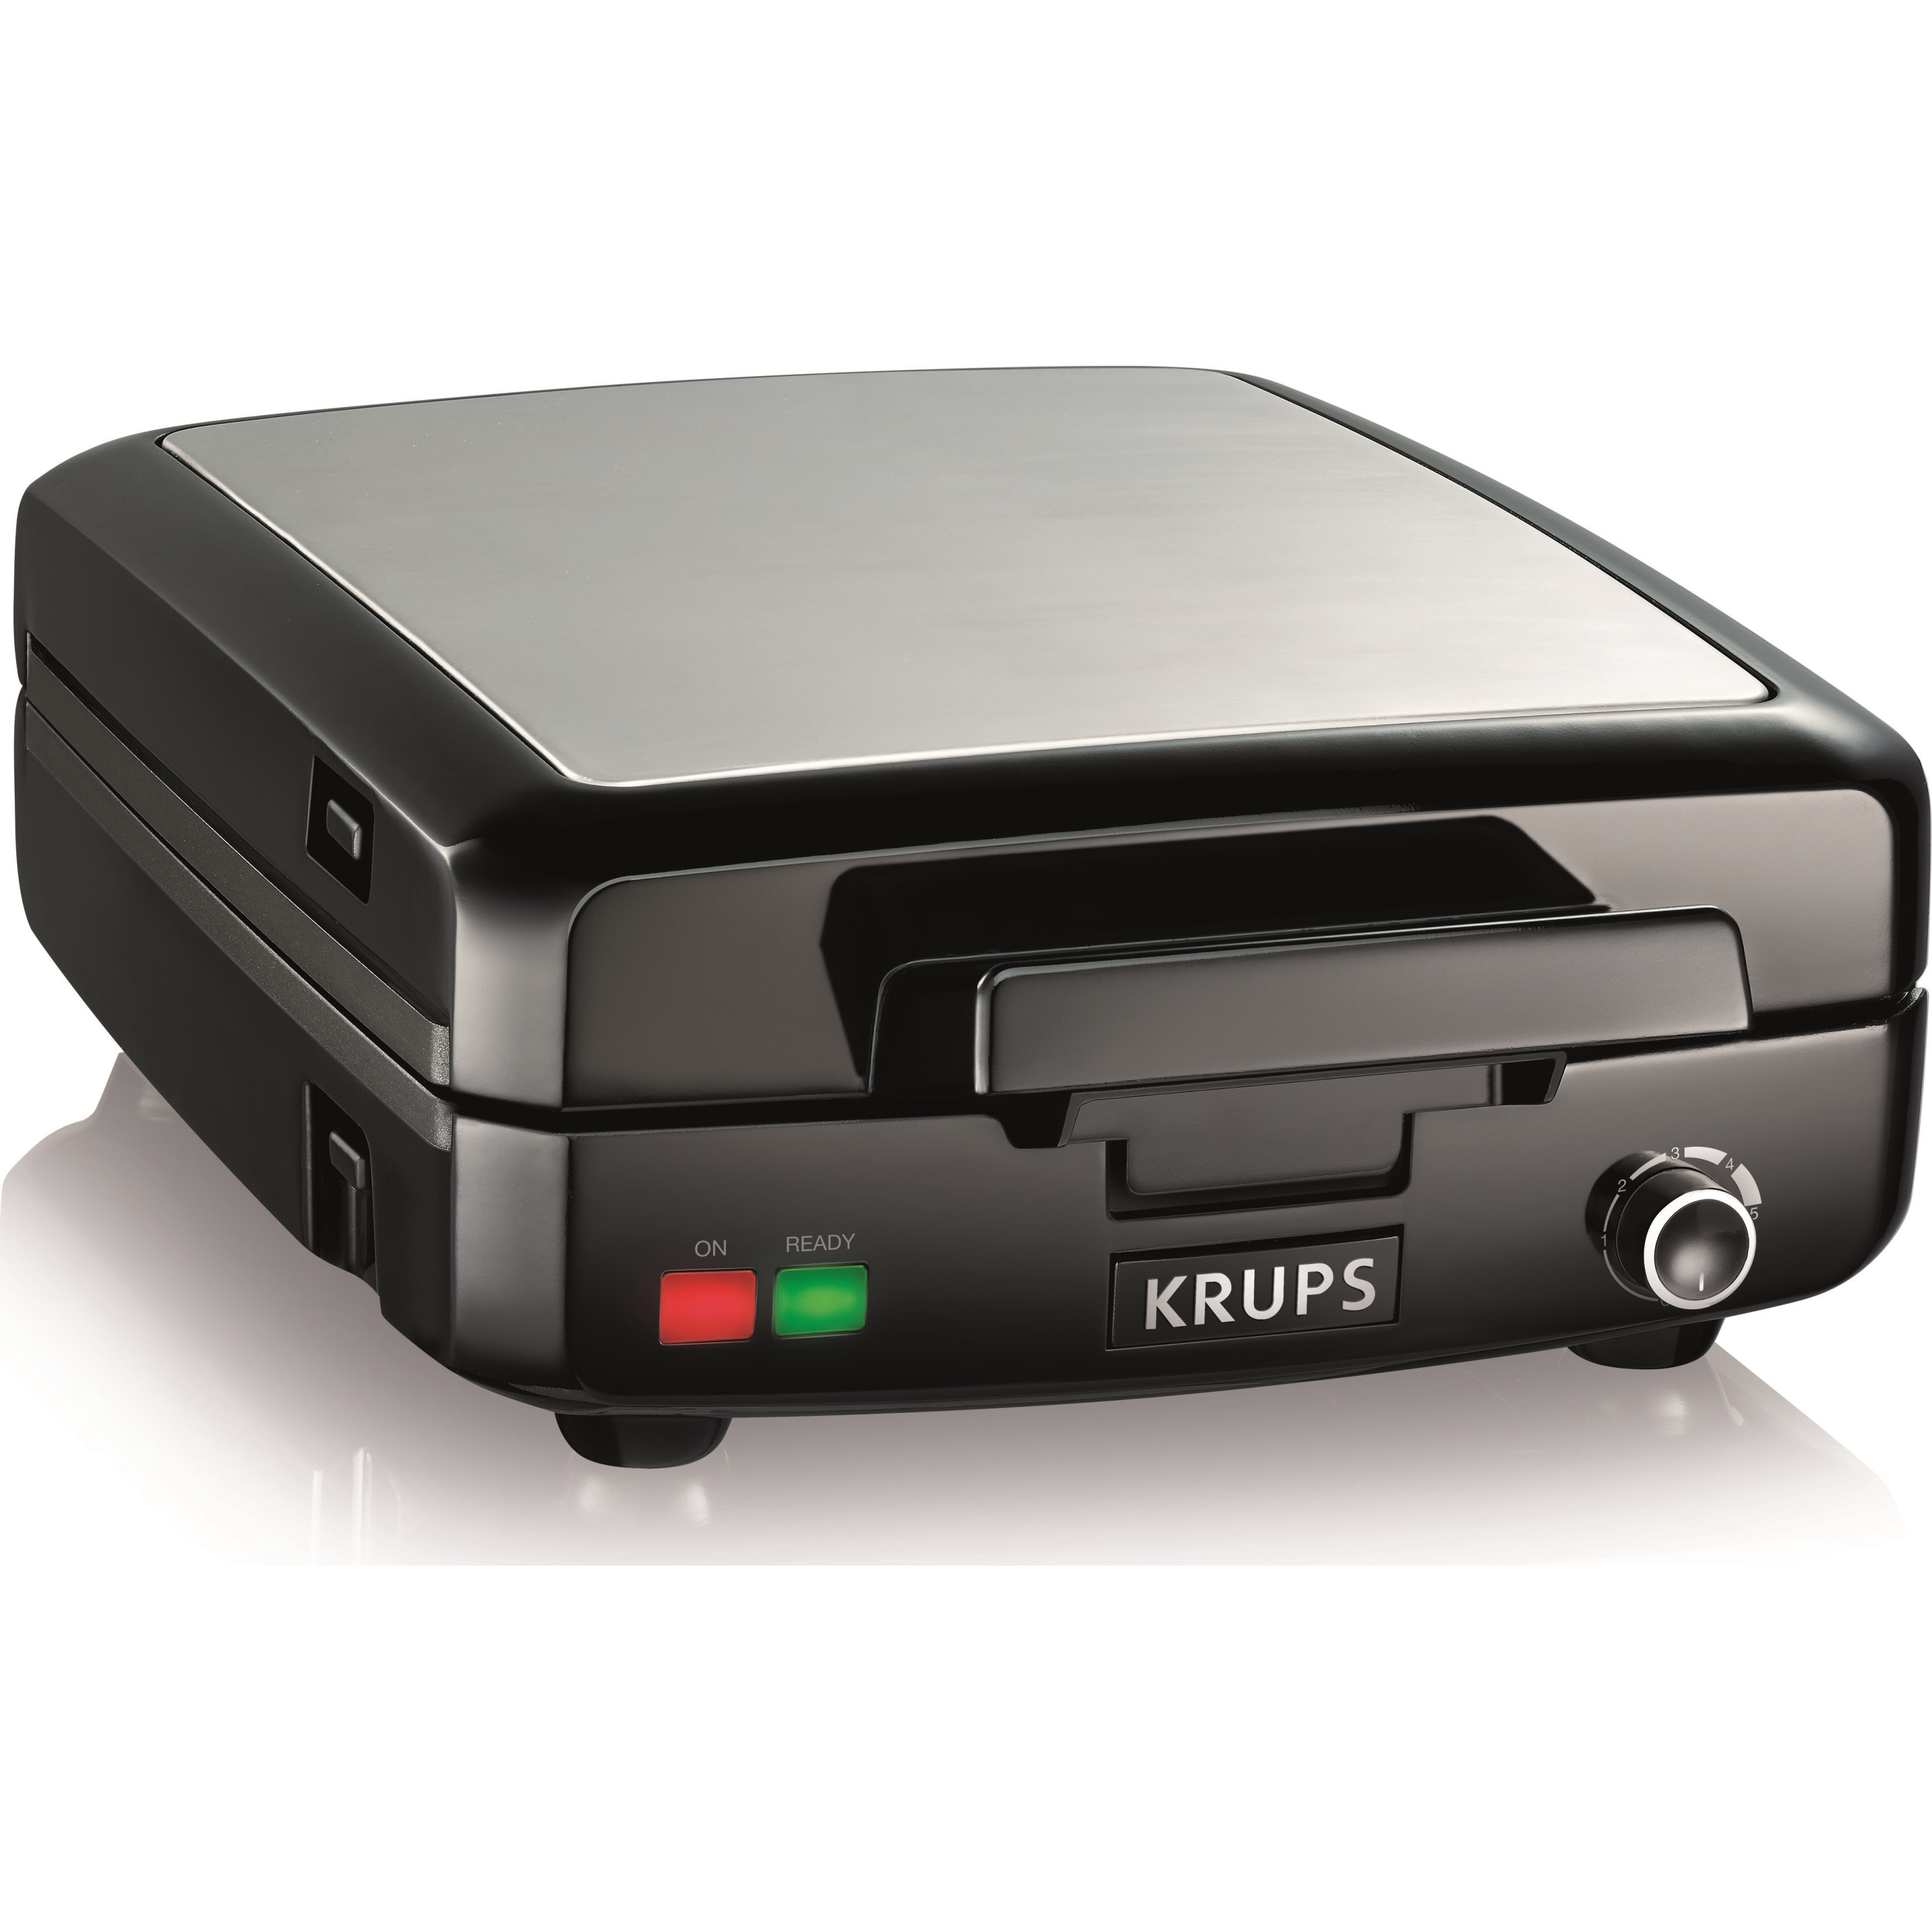 KRUPS, 4-Slice Belgian Waffle Maker With Removable Plates, Stainless Steel GQ502D51